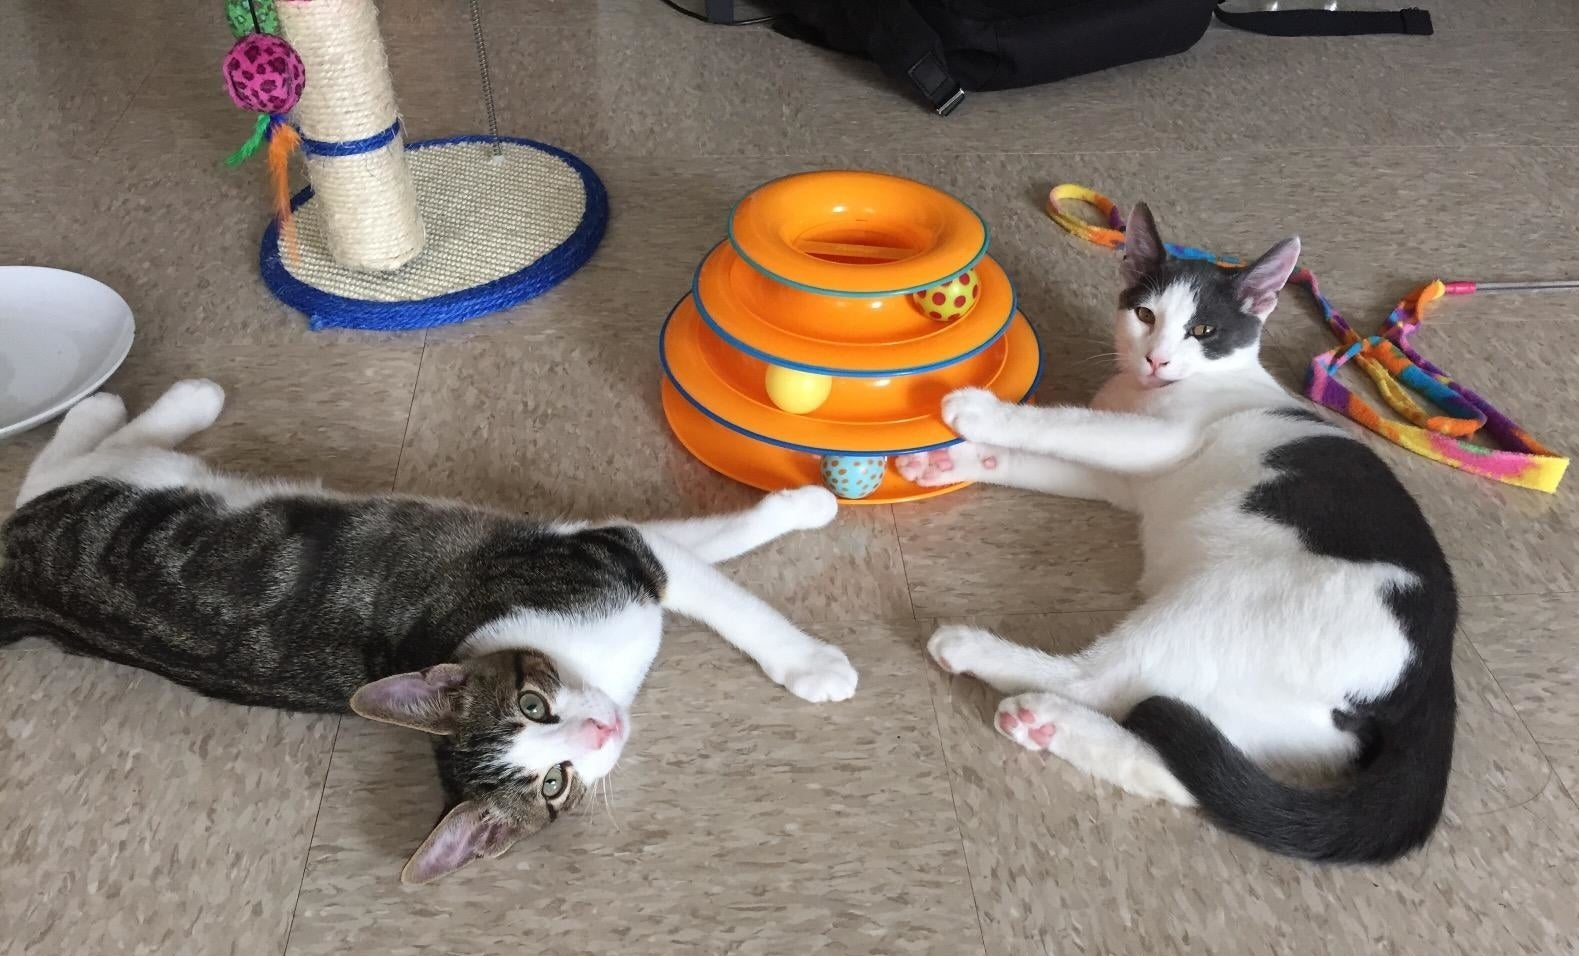 a reviewer's cats playing with the ball toy